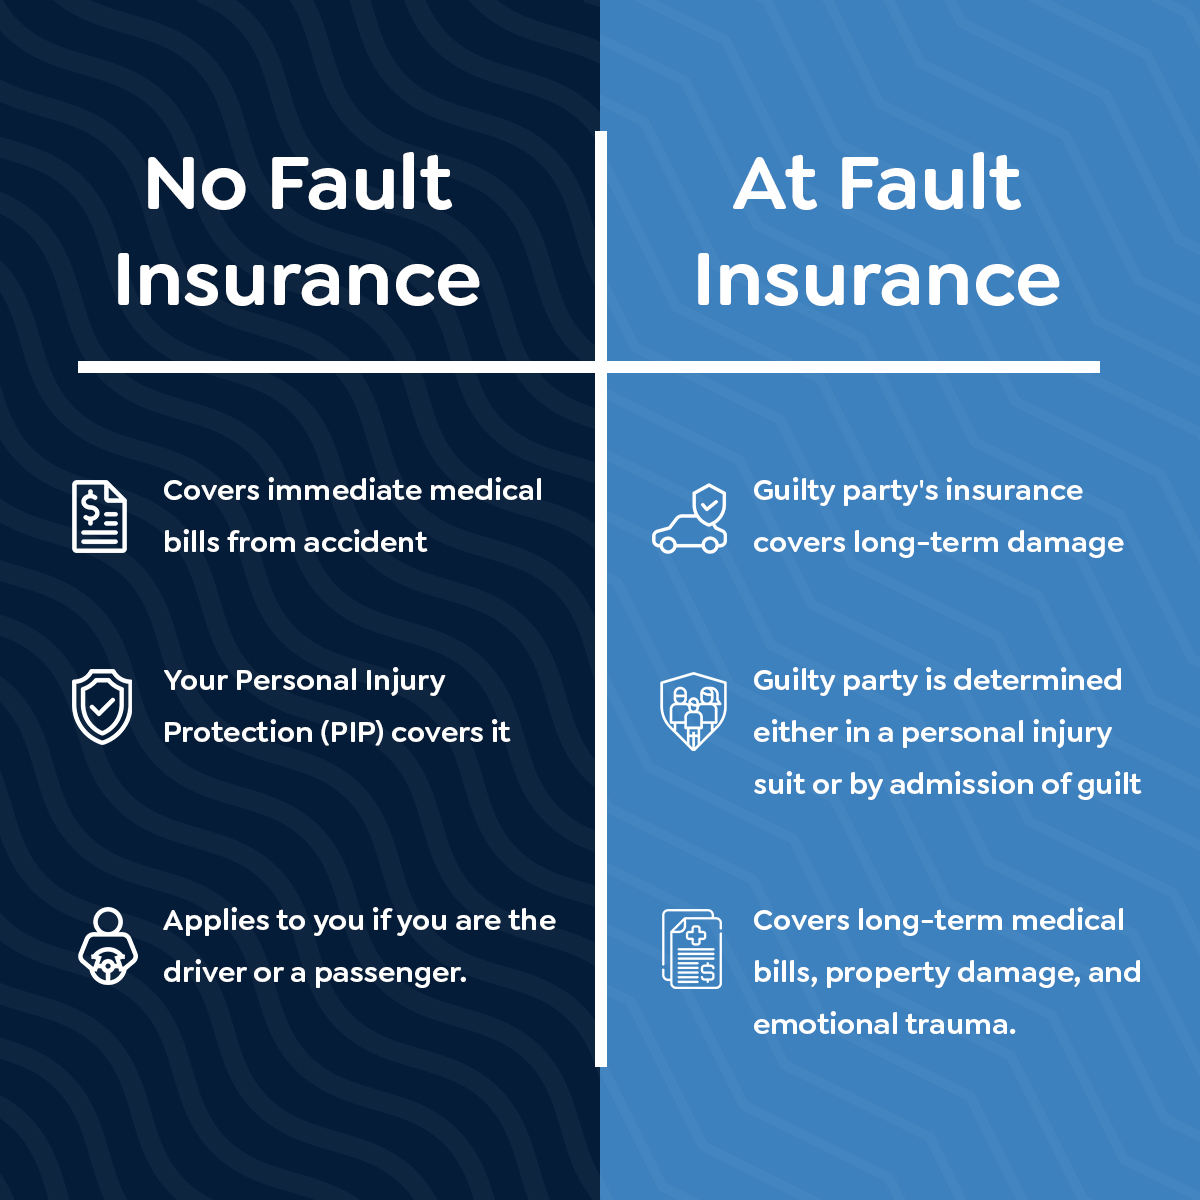 No Fault to At Fault Insurance